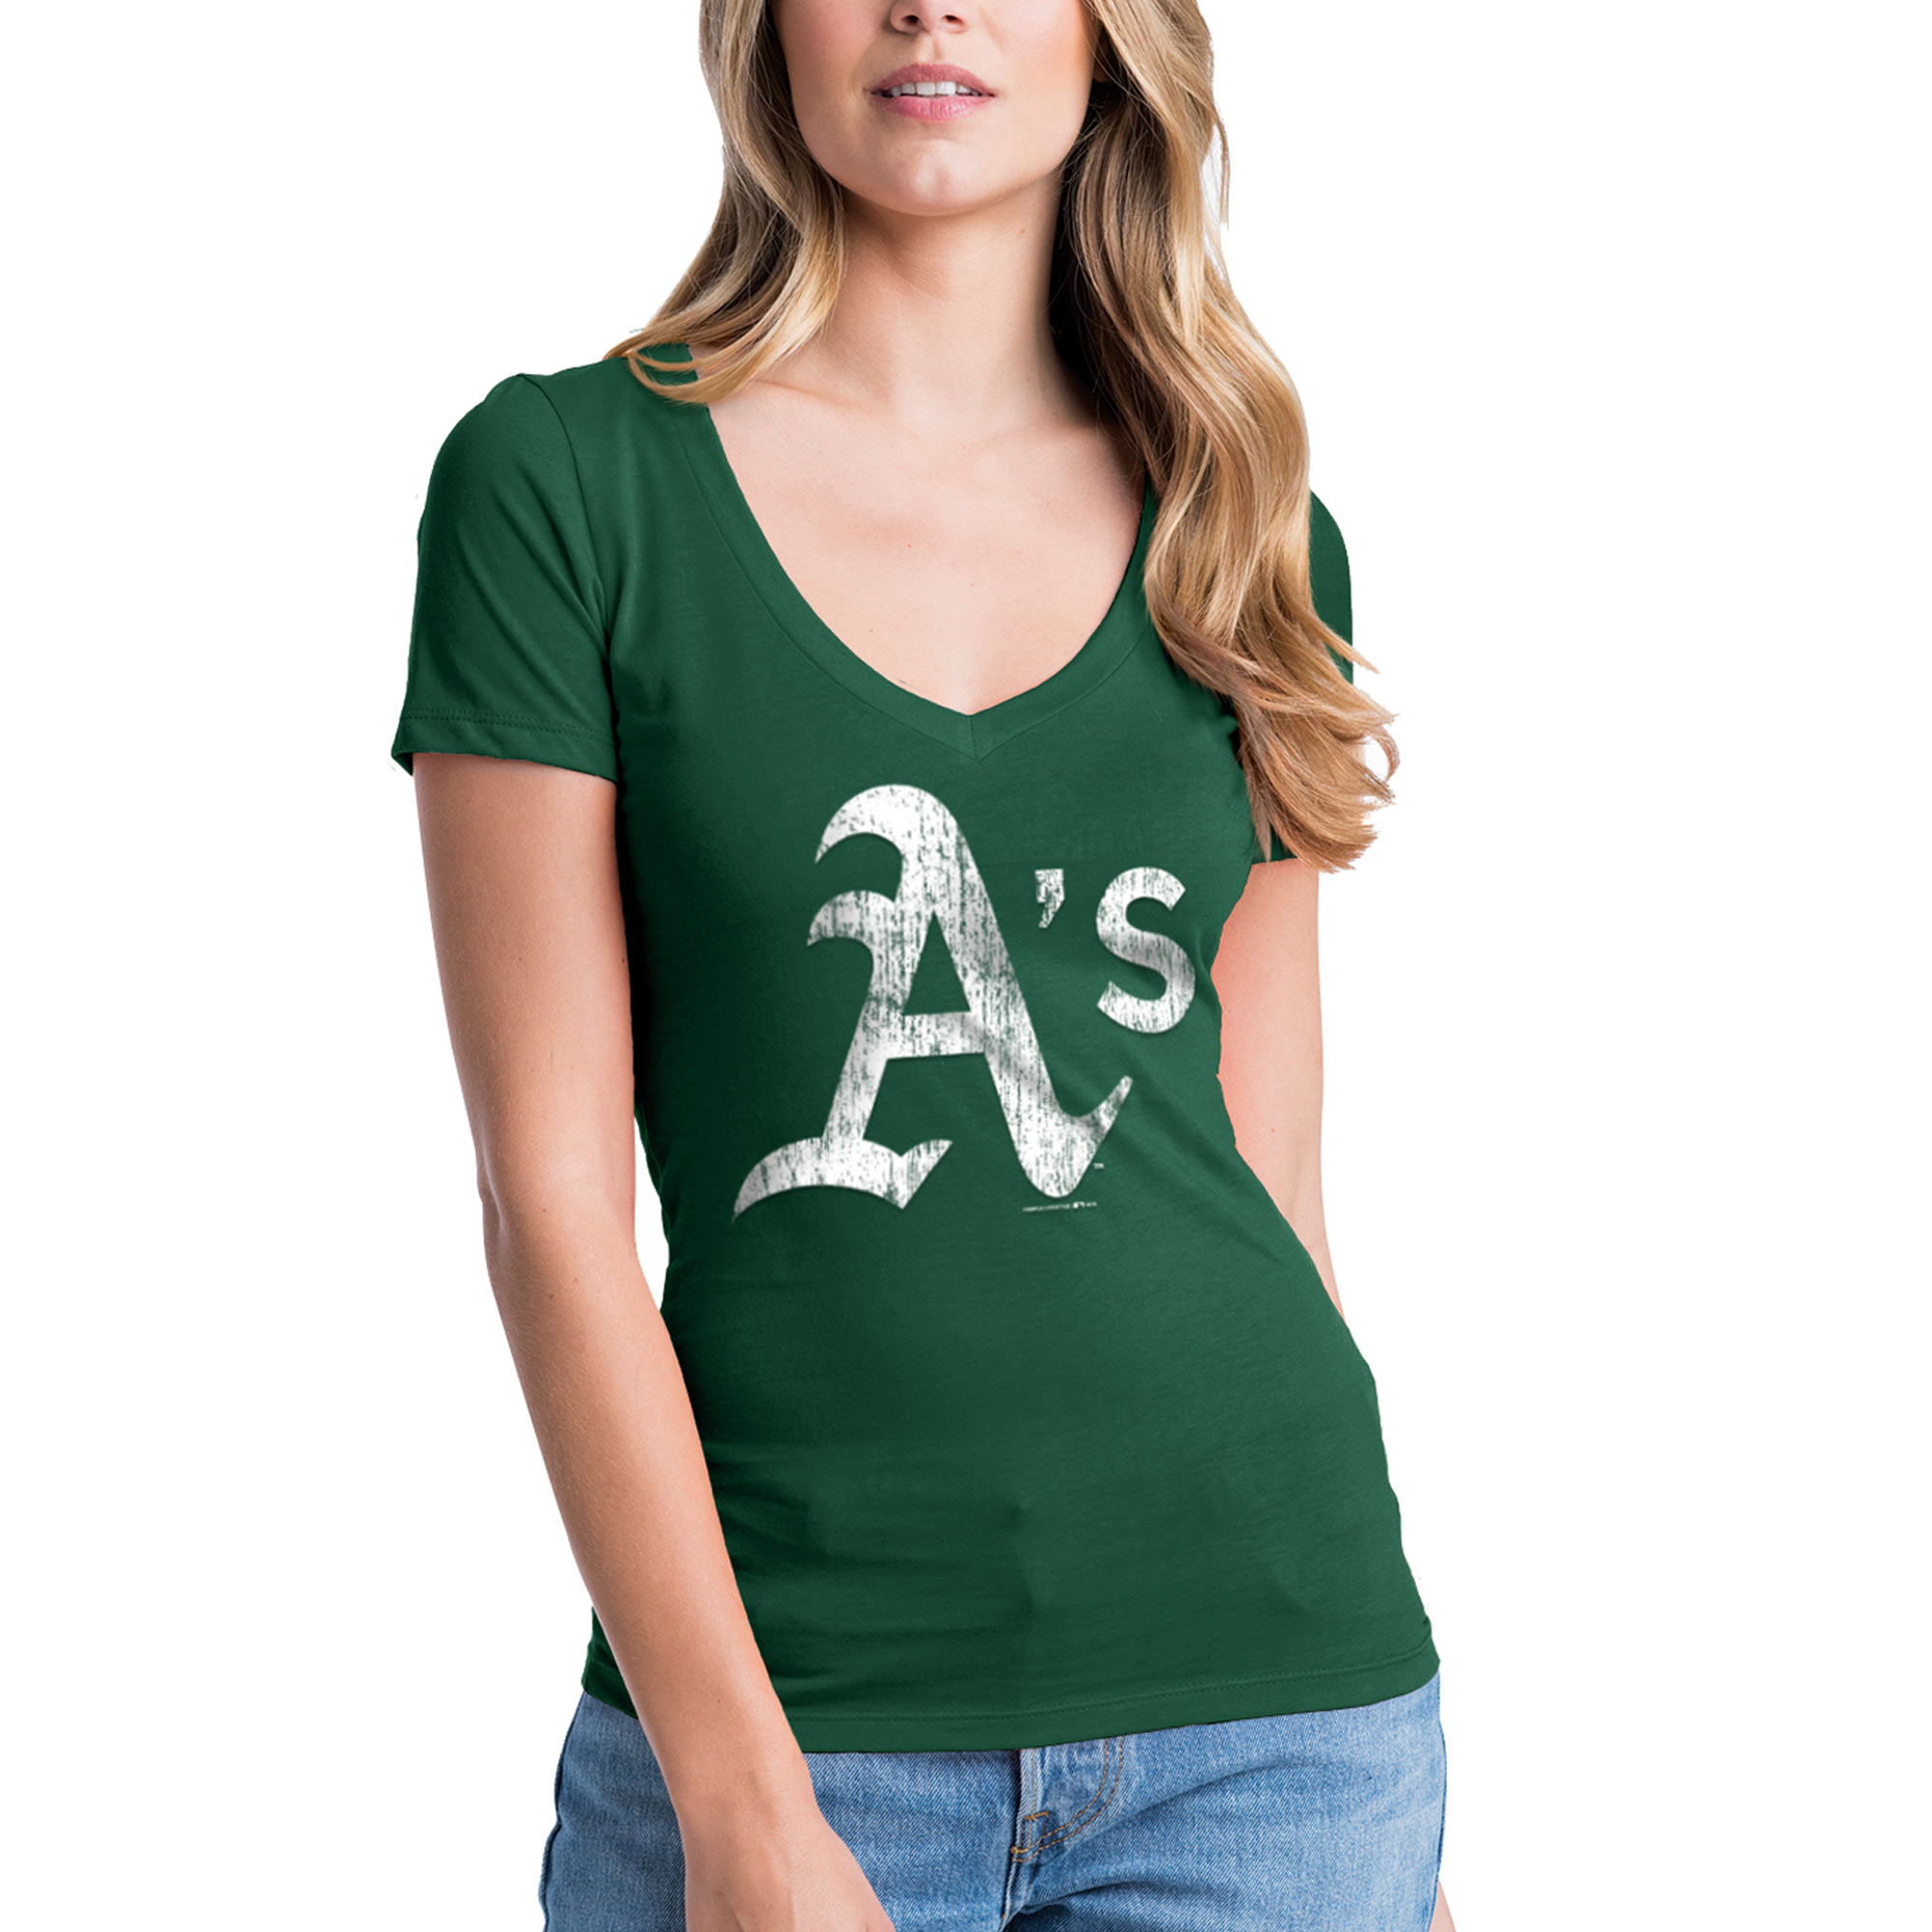 Oakland Athletics New Era Women's V-Neck T-Shirt - Green